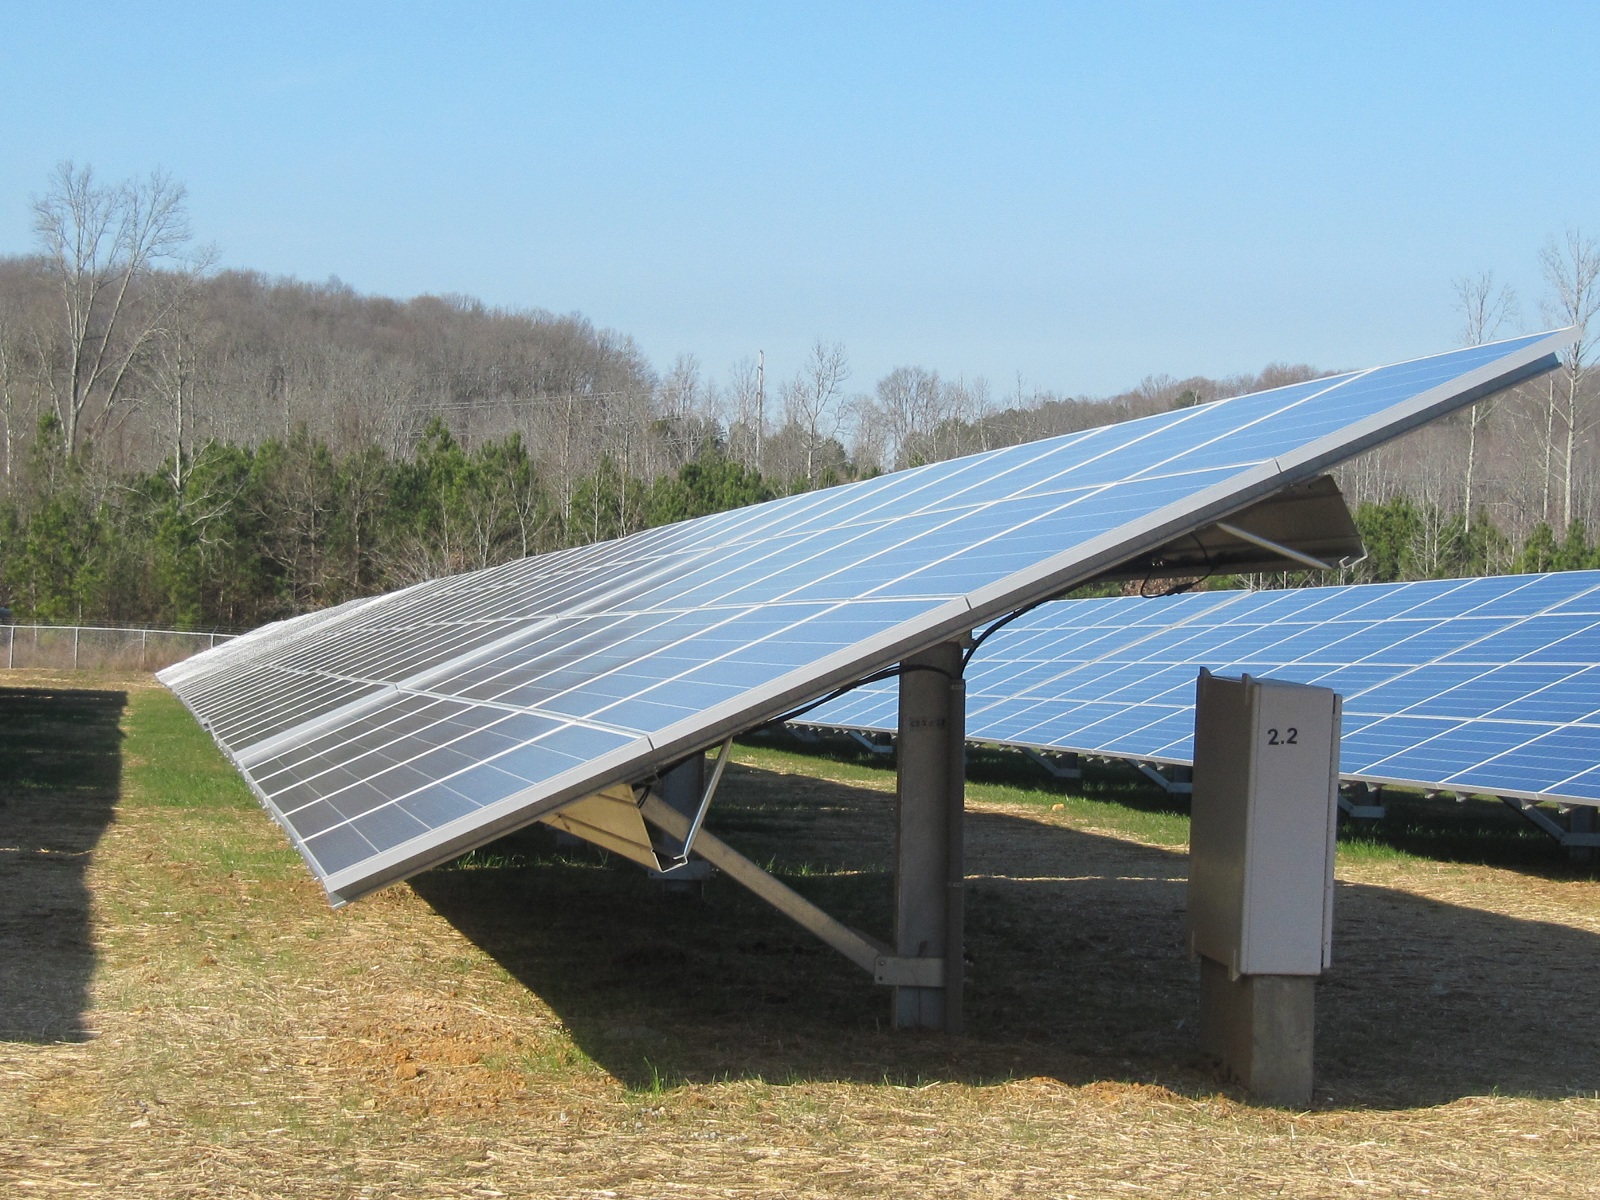 Solar Power Hits New Us Heights Utility Use Exceeds Home Panels Panel Car Toyota